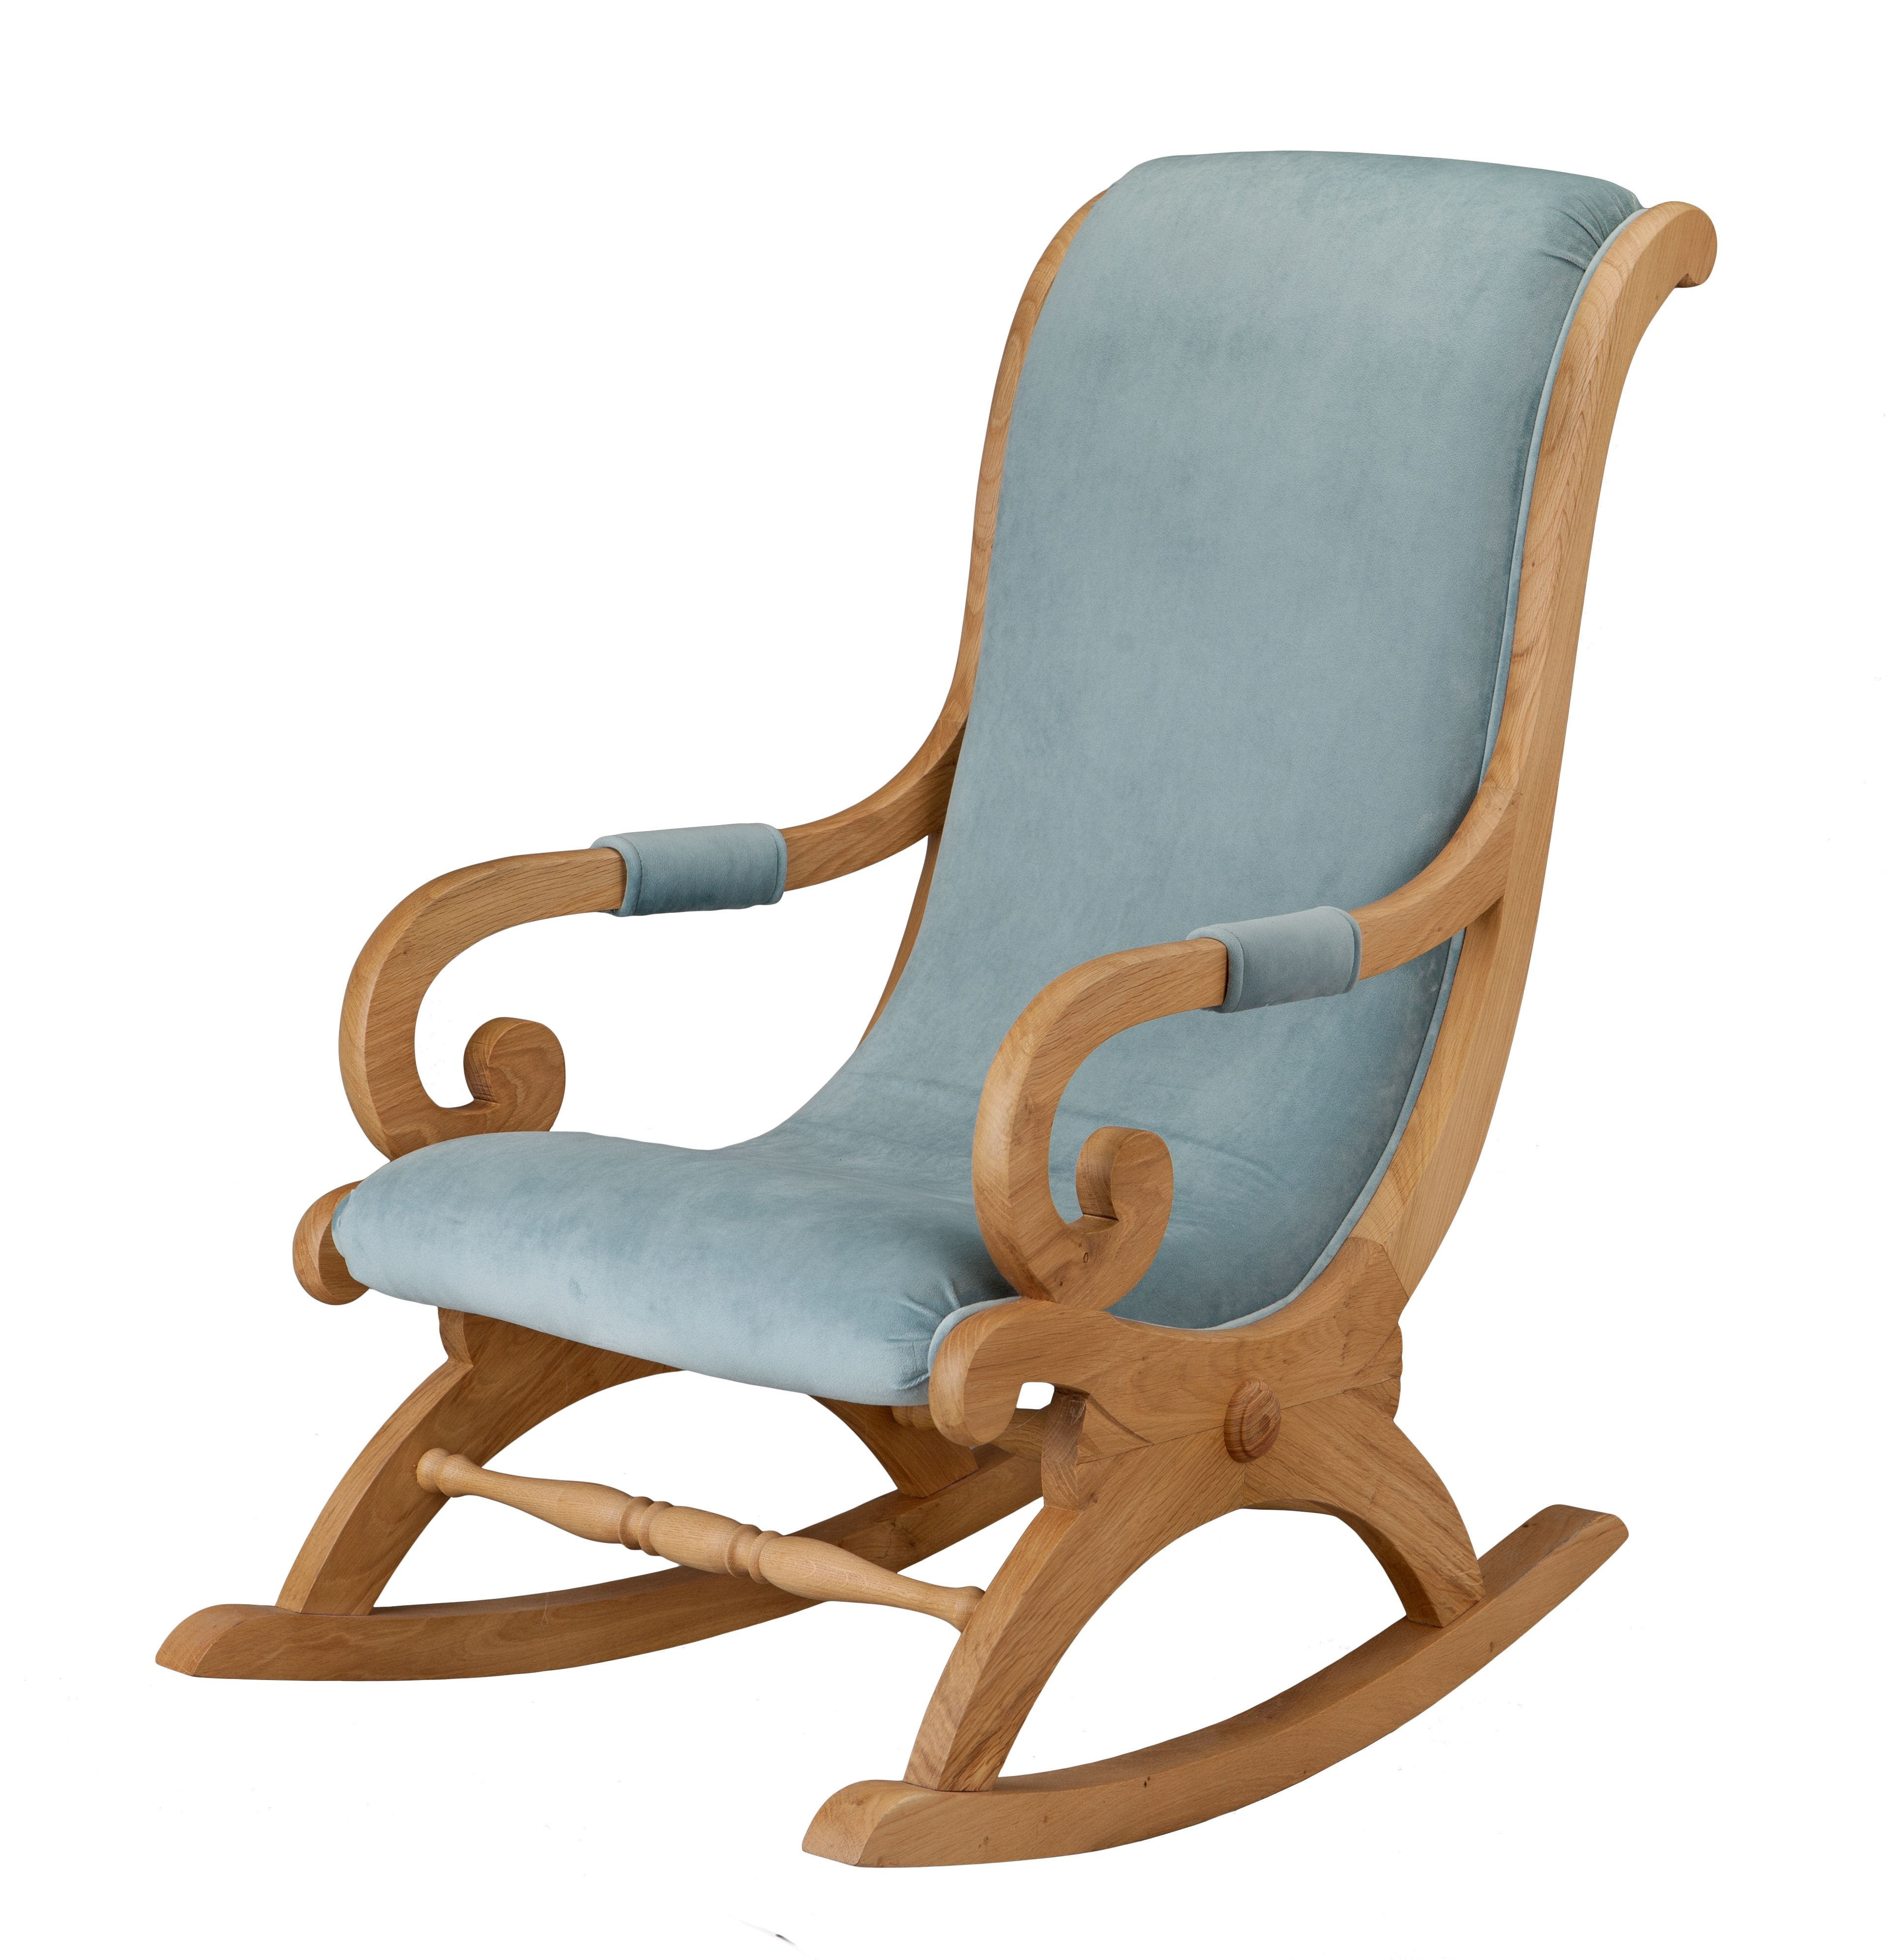 Looking For Rocking Chairs Buy Cheap Nursery Rocking Chair Compare Products Prices